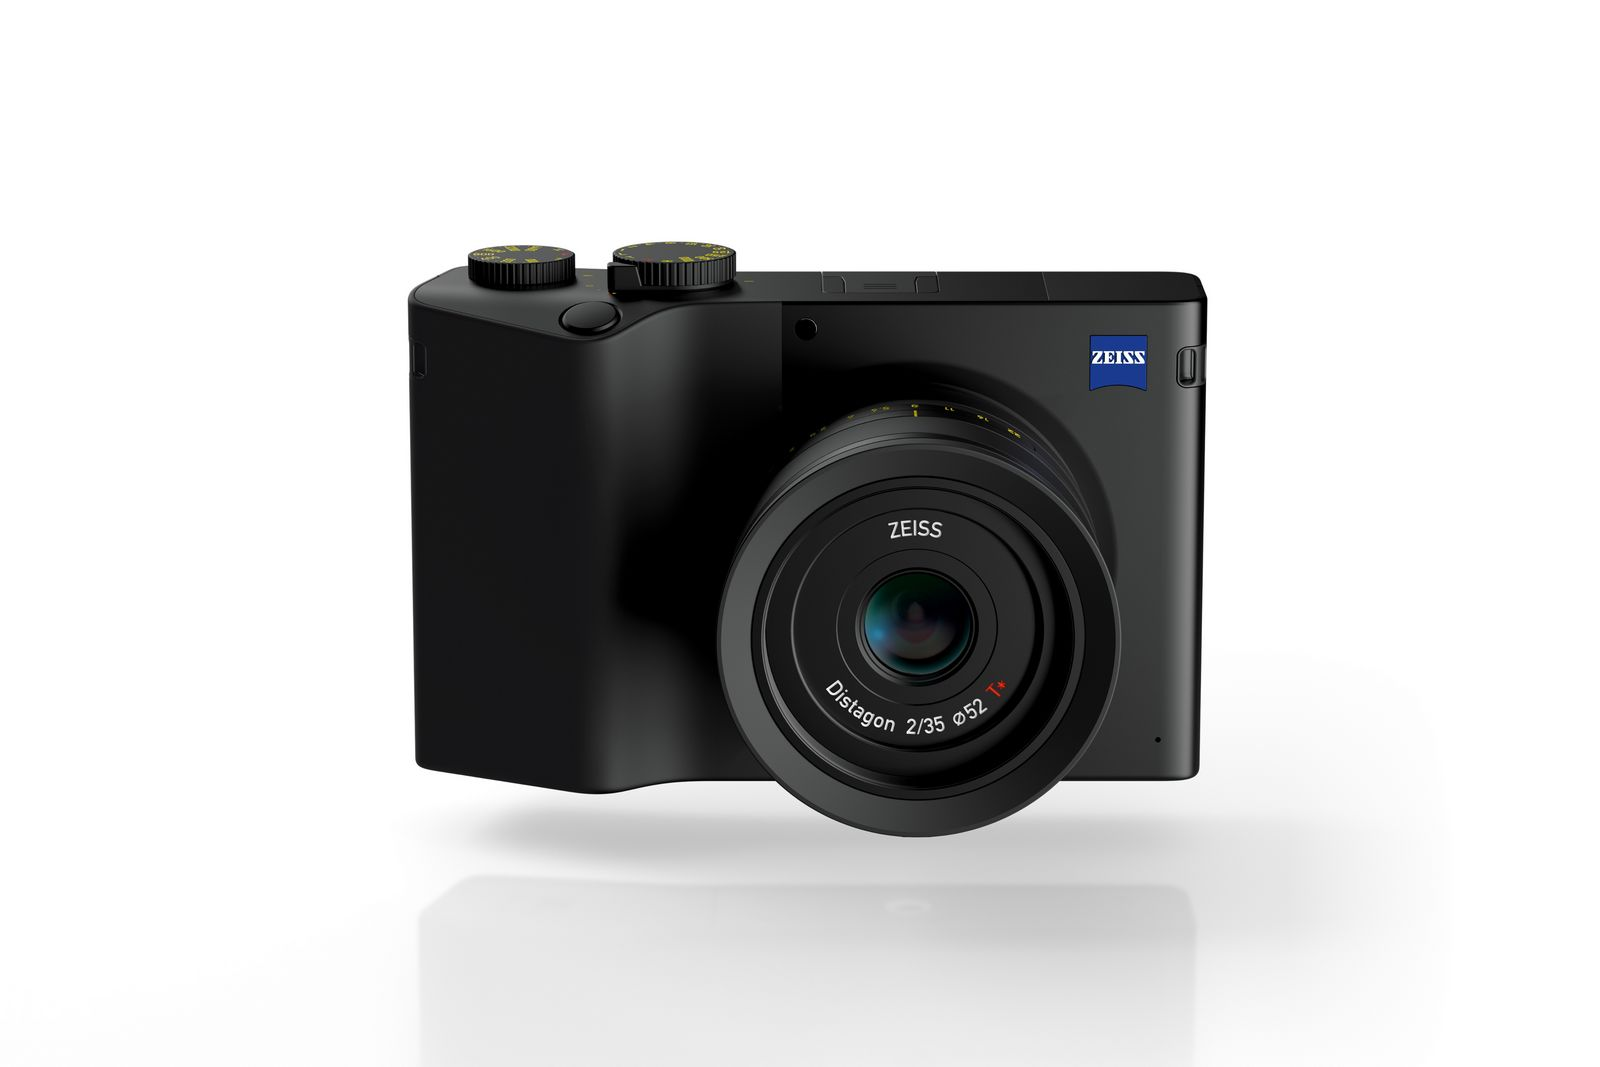 Zeiss' first digital camera is the ZX1 full-frame compact